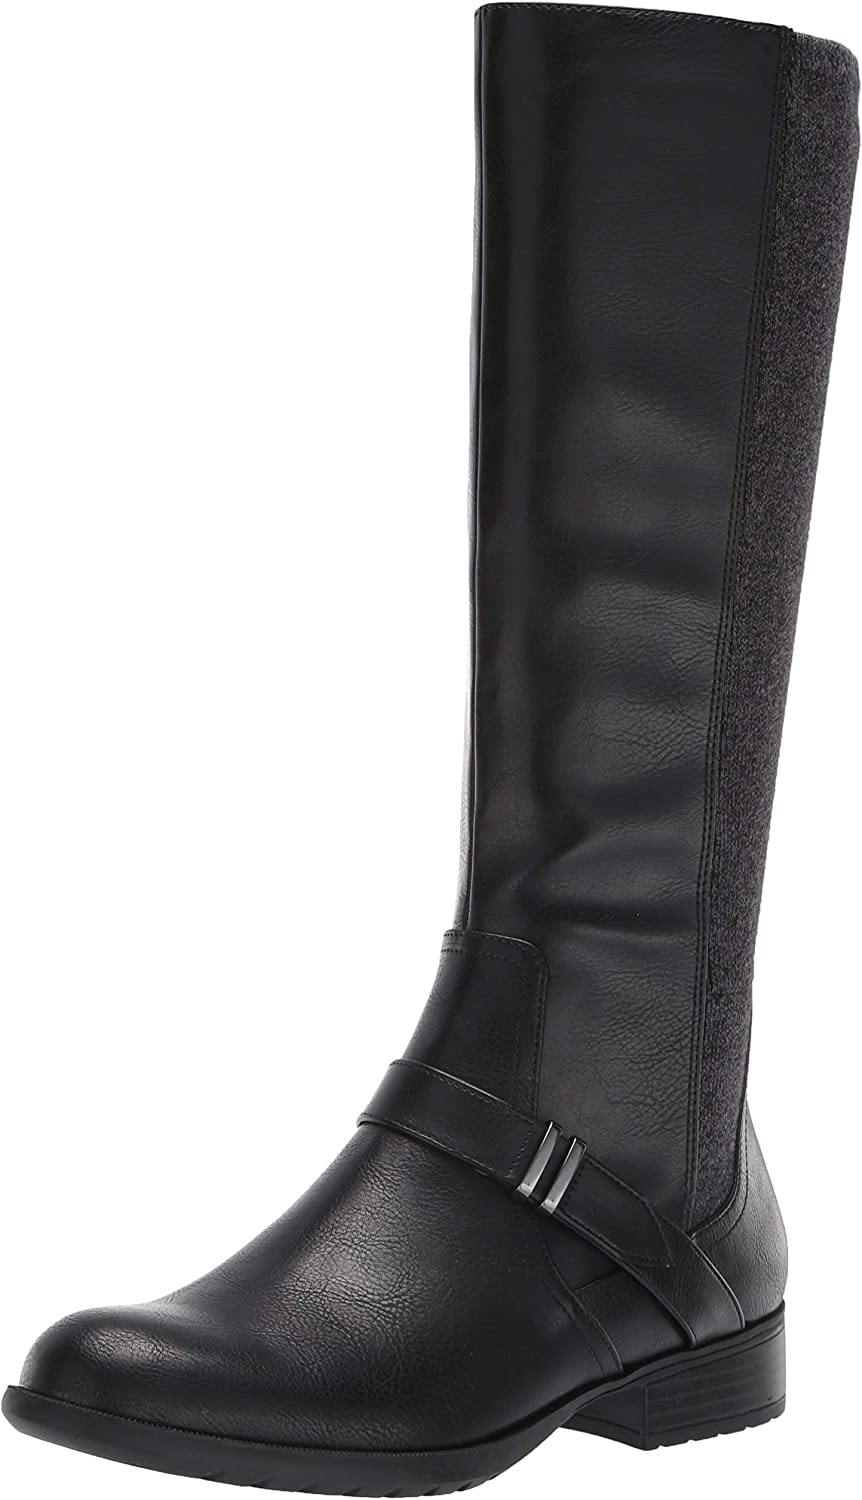 Free shipping New LifeStride Women's Ranking TOP19 Xtra Knee High Boot